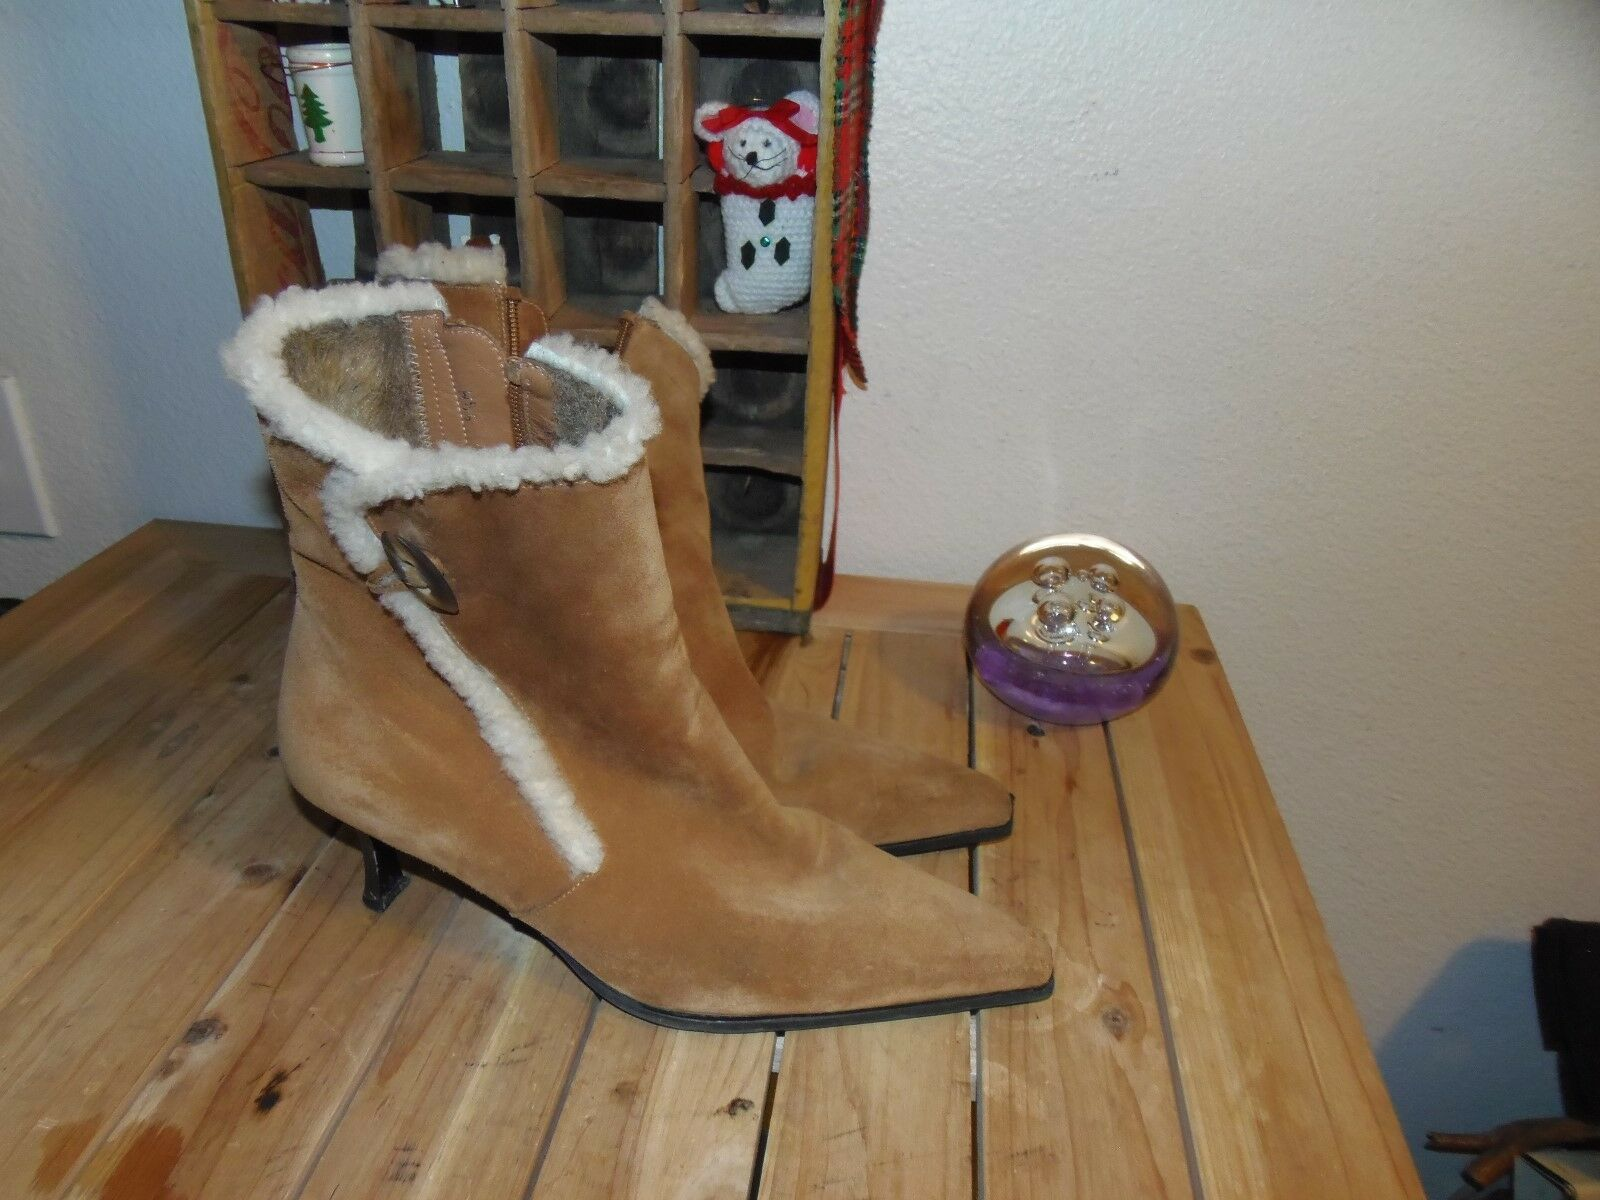 Stuart Weitzman BOOTS 9.5 Brown Leather Leather Leather Boots 9.5  Worn THREE TIMES FUR LINING a0b477